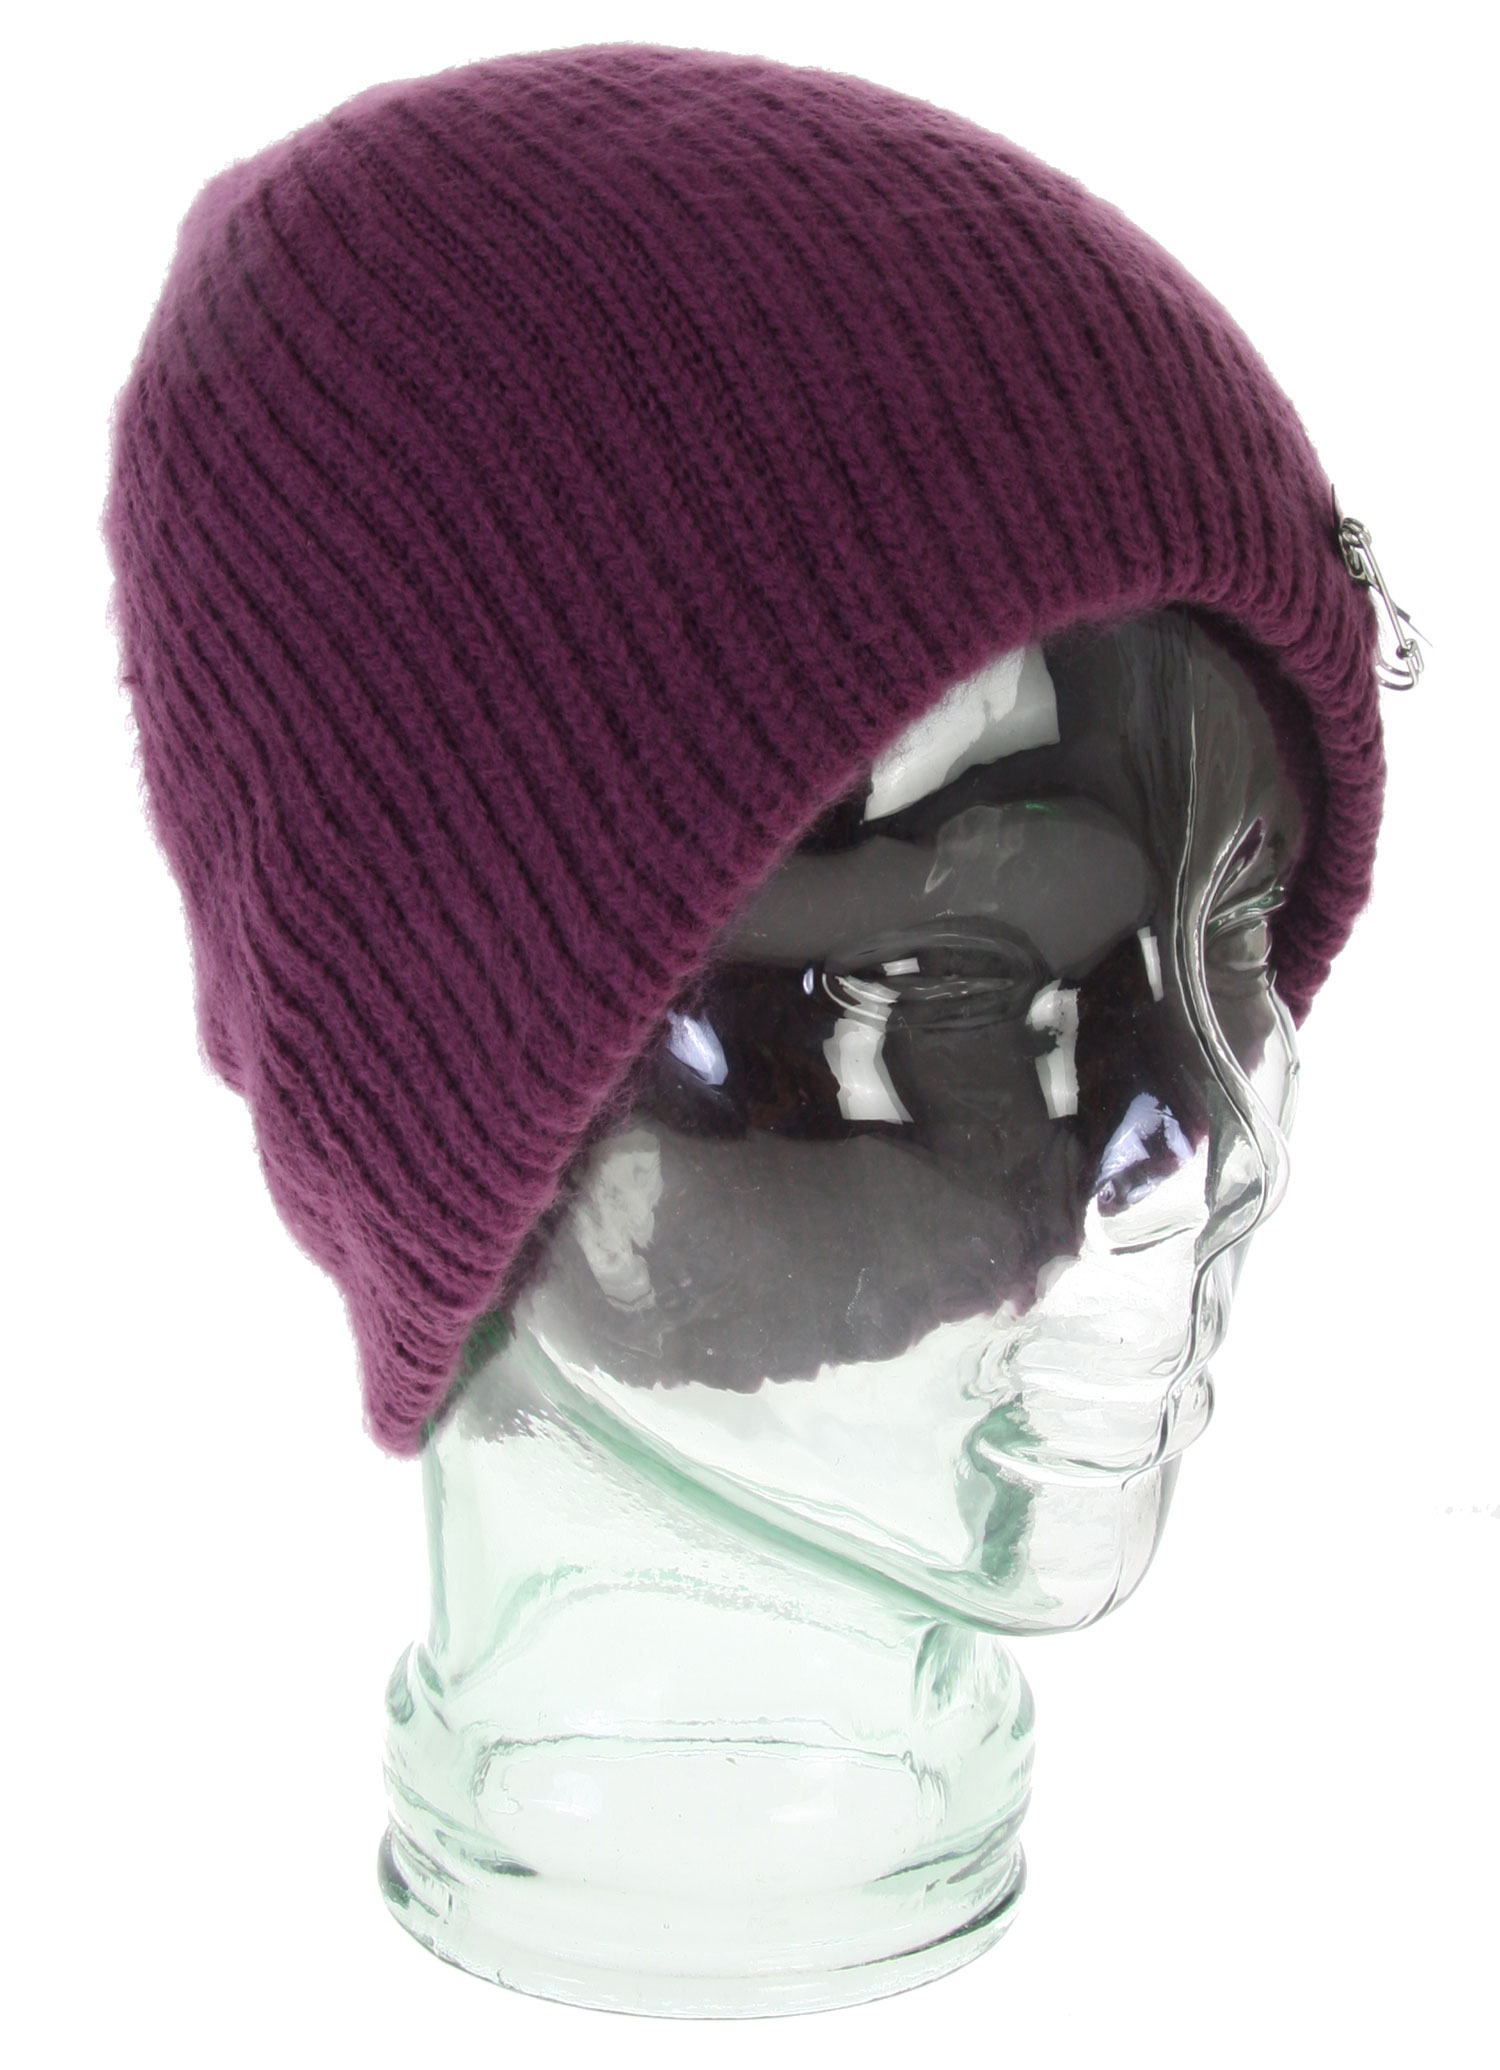 Ski The Holden Dylan Beanie is another great item from a familiar name in the snowboard and ski community. Like every piece of apparel produced by this earth-friendly and globally-conscious company, the Dylan beanie is as stylish as it is functional. Made of easy-care acrylic, this rib knit beanie is gently distressed for superior softness. As an added dash of fashion, the Dylan beanie is trimmed with Holden's unique safety pin and ribbon brand label. Sometimes the best style is effortless, and the Dylan beanie from Holden is a classic example.Key Features of the Holden Dylan Beanie: Subtle distressing for soft feel Finished with custom HOLDEN metal safety pin and woven label trim 100% Acrylic - $19.95